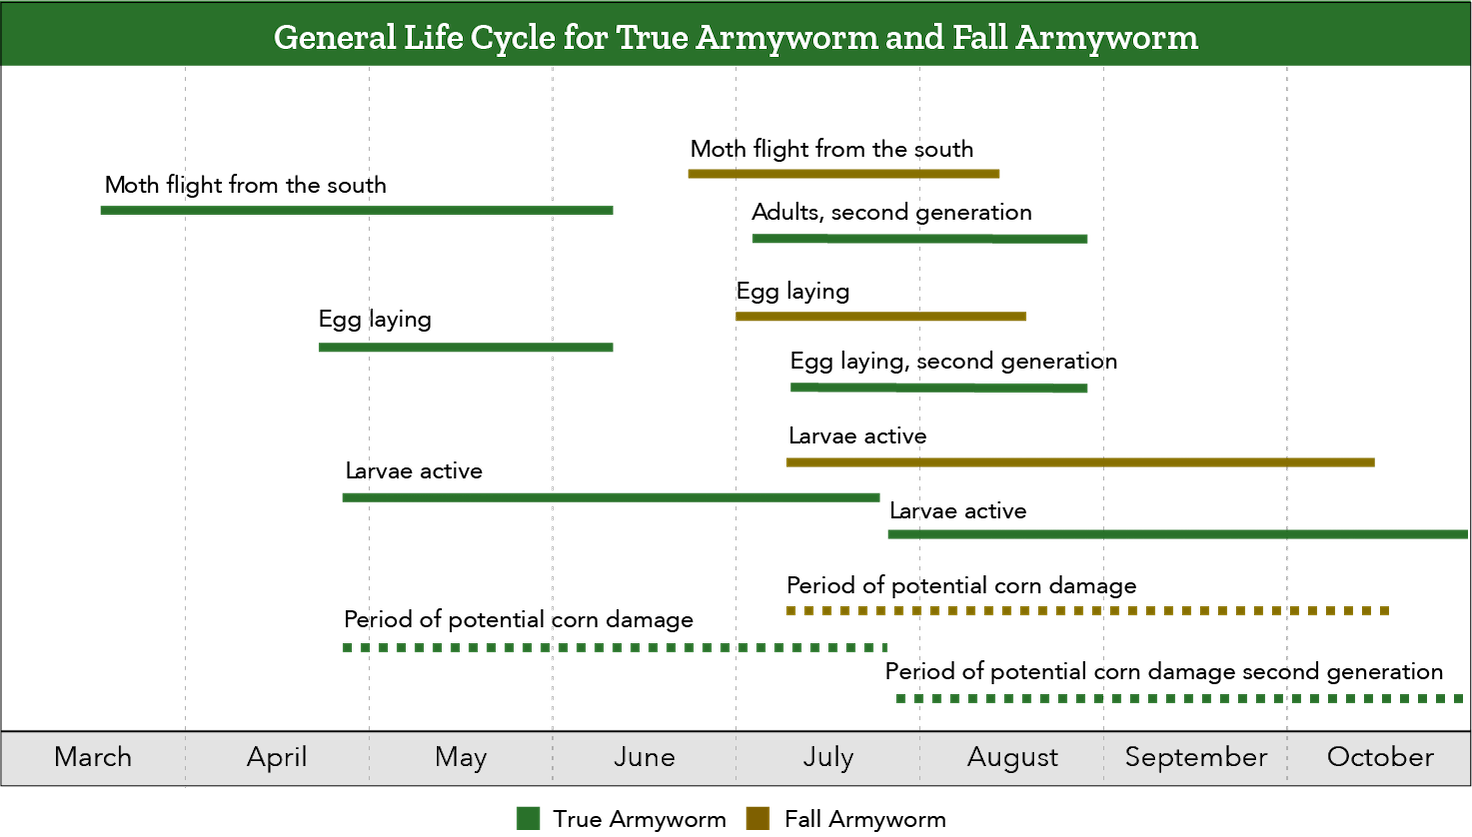 Armyworm lifecycle chart